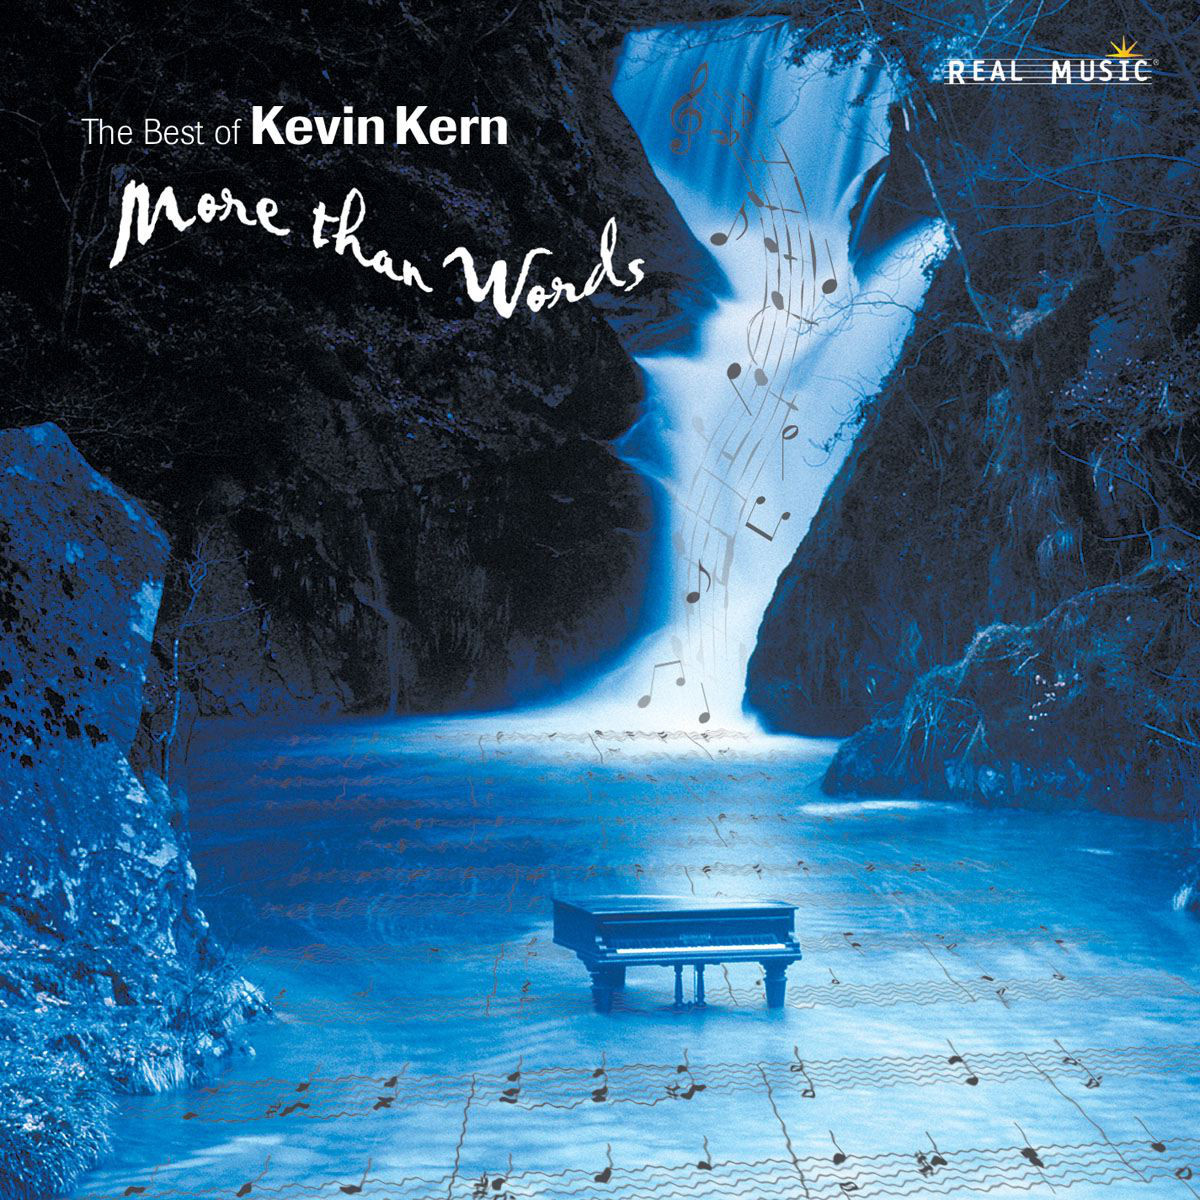 【钢琴】More Than Words: The Best of Kevin Kern (言犹未尽) - 山夫 - 天地有大美而不言